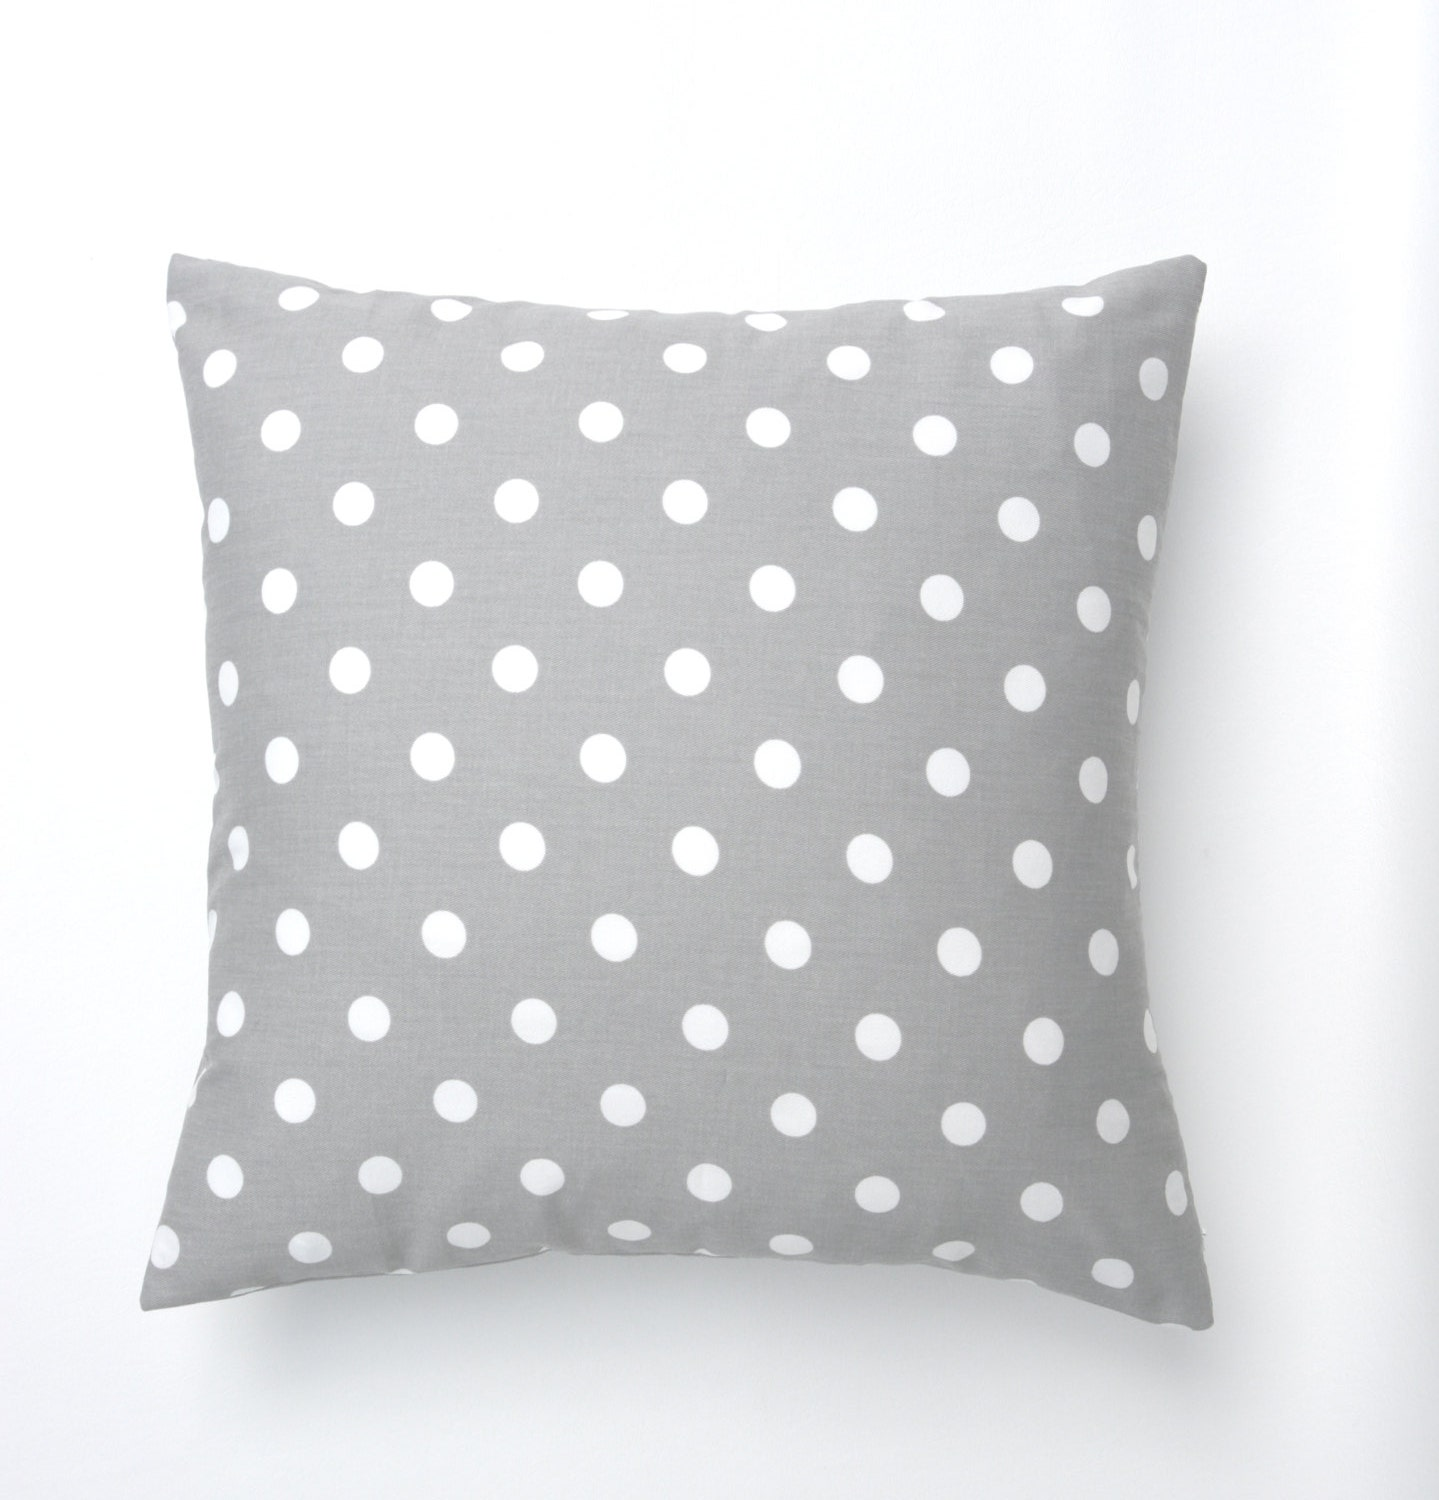 Decorative Pillow Covers With Zippers : Home decor Decorative pillows Decorative Pillow Throw